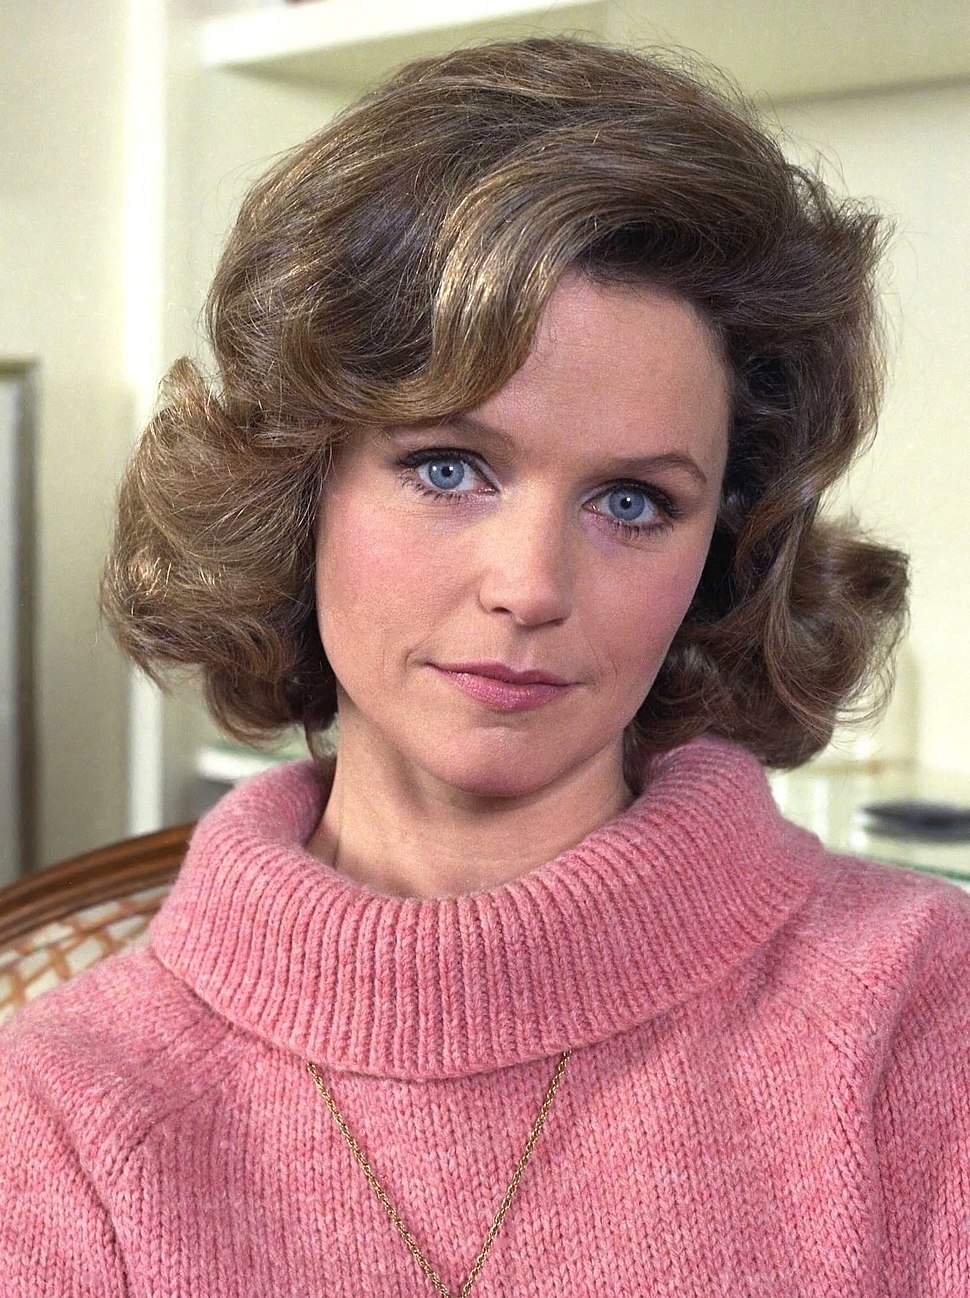 Lee Ann Remick, London, 1974